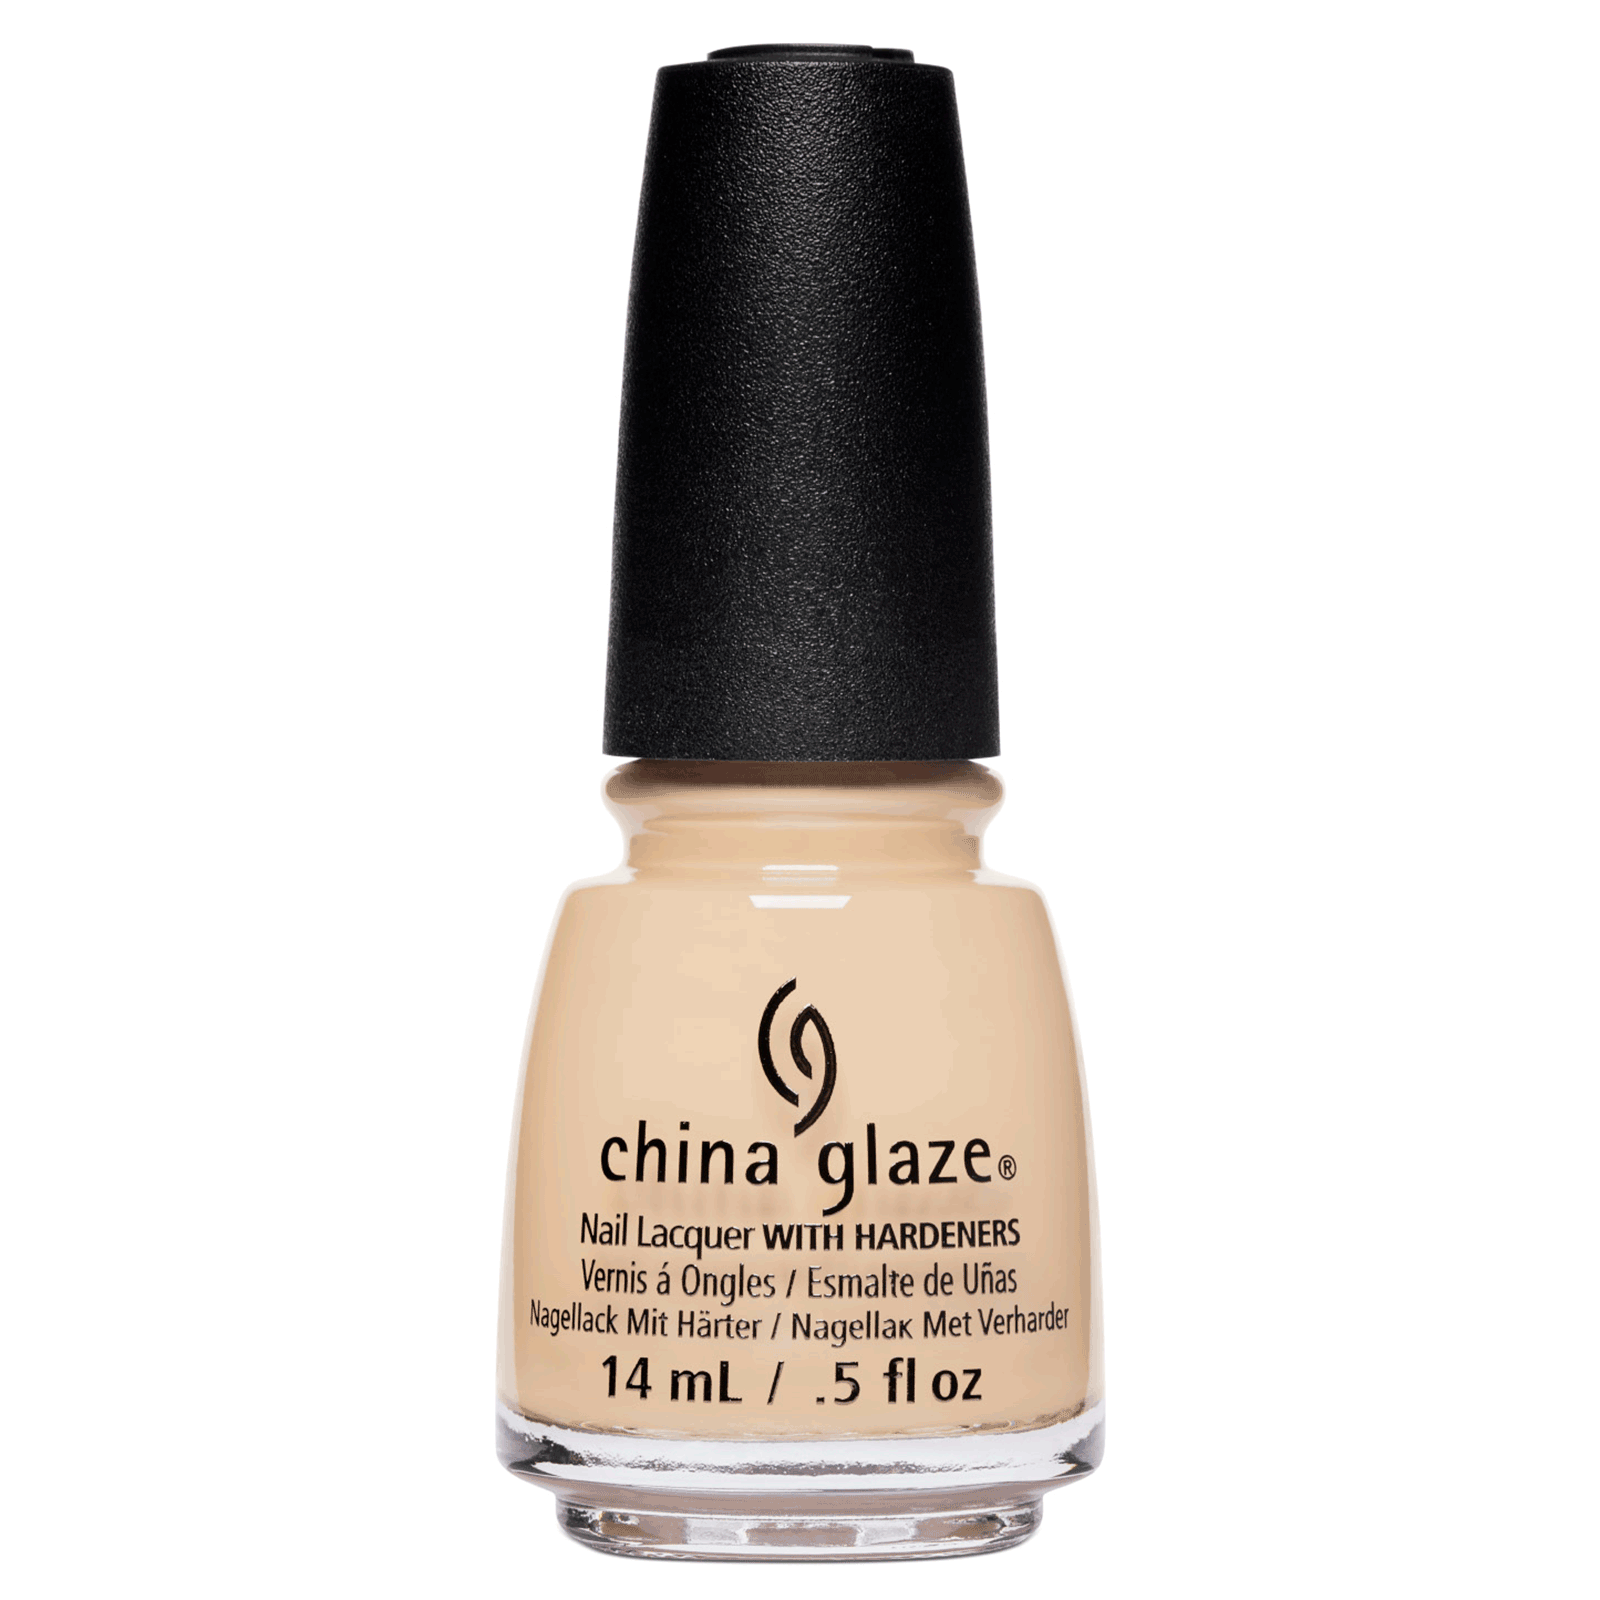 Shades of Nude Collection